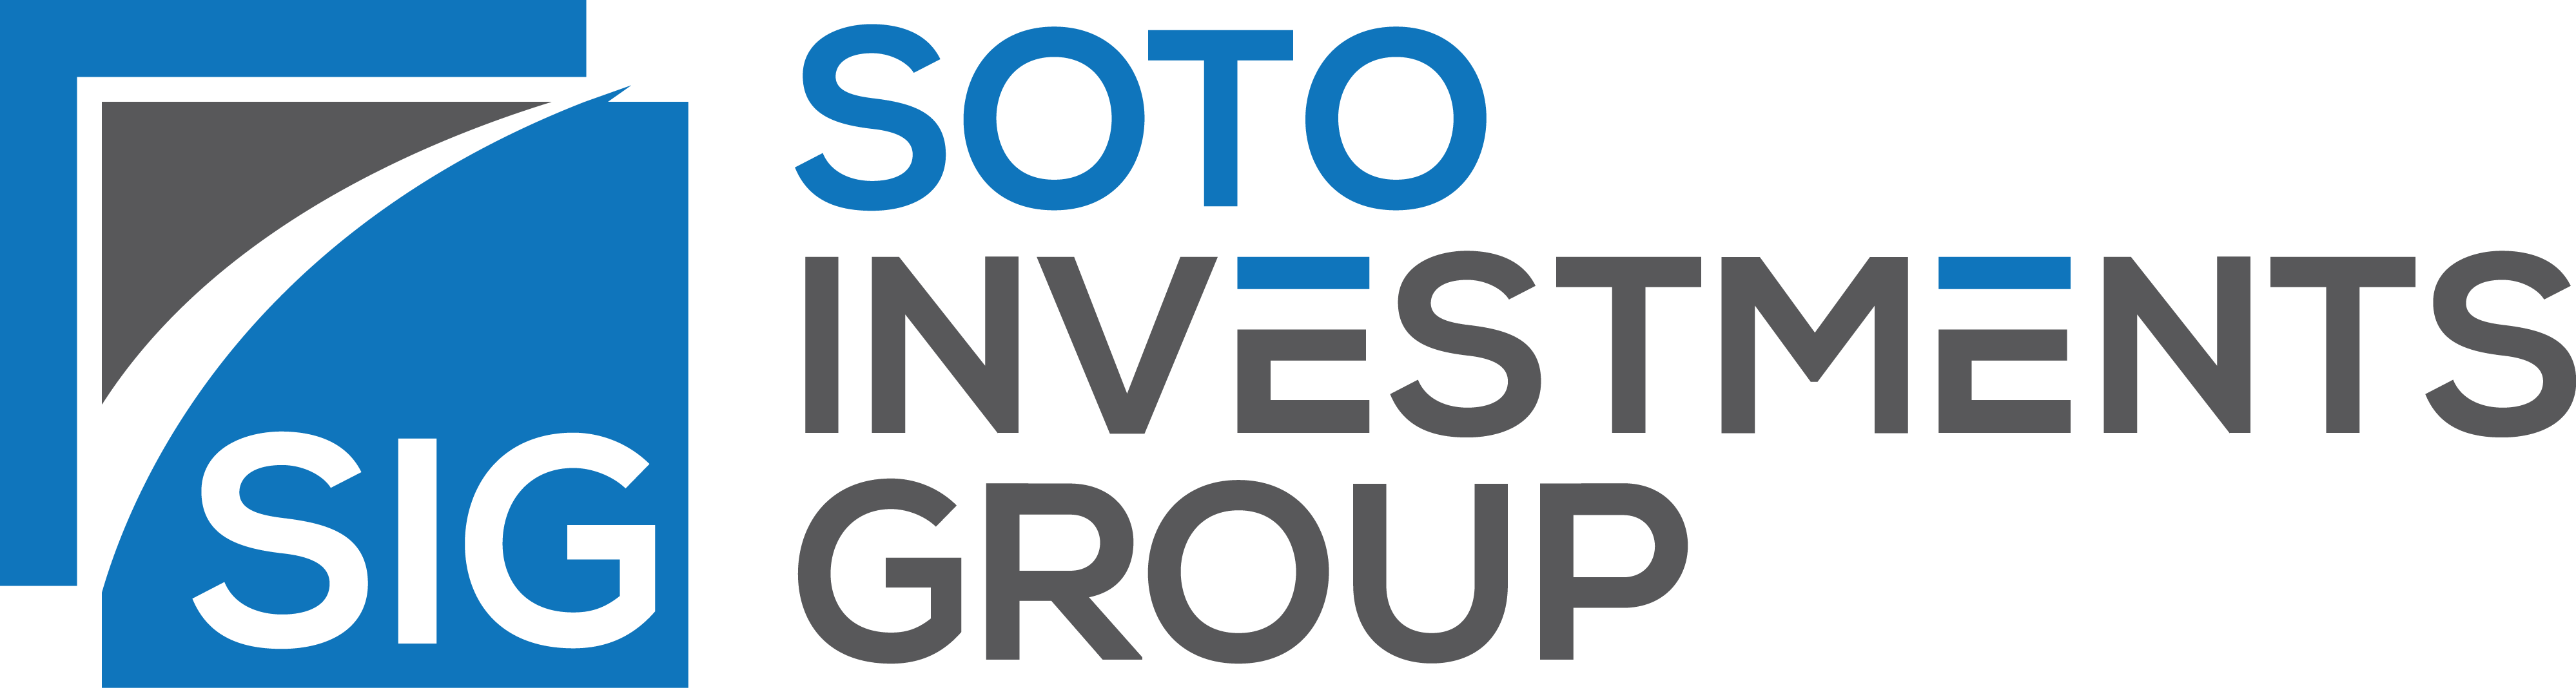 SOTO INVESTMENTS GROUP